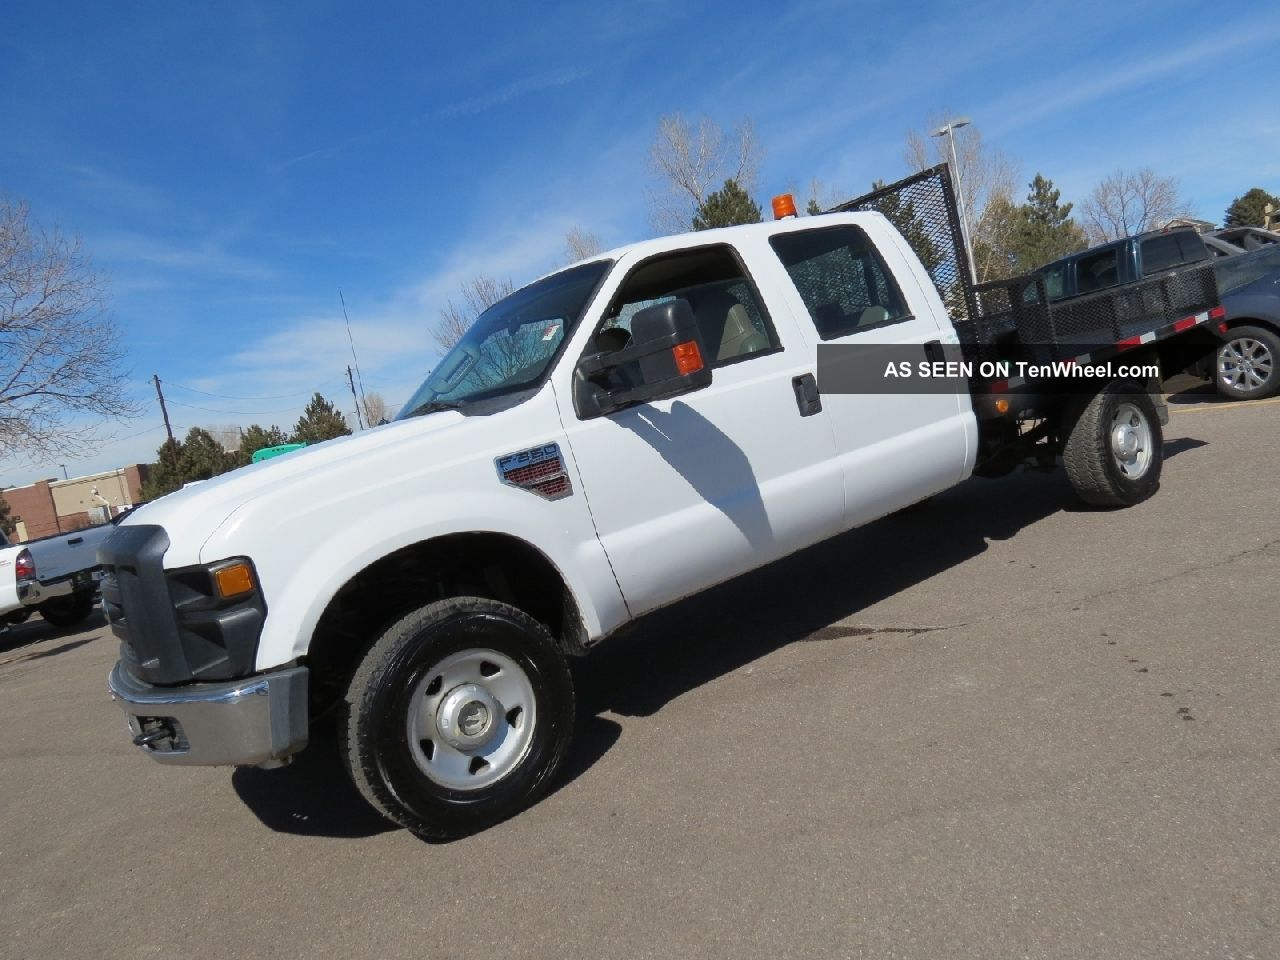 2008 ford f 350 crew cab 4x4 flatbed diesel 4x4 fleet all power runs gr8. Black Bedroom Furniture Sets. Home Design Ideas